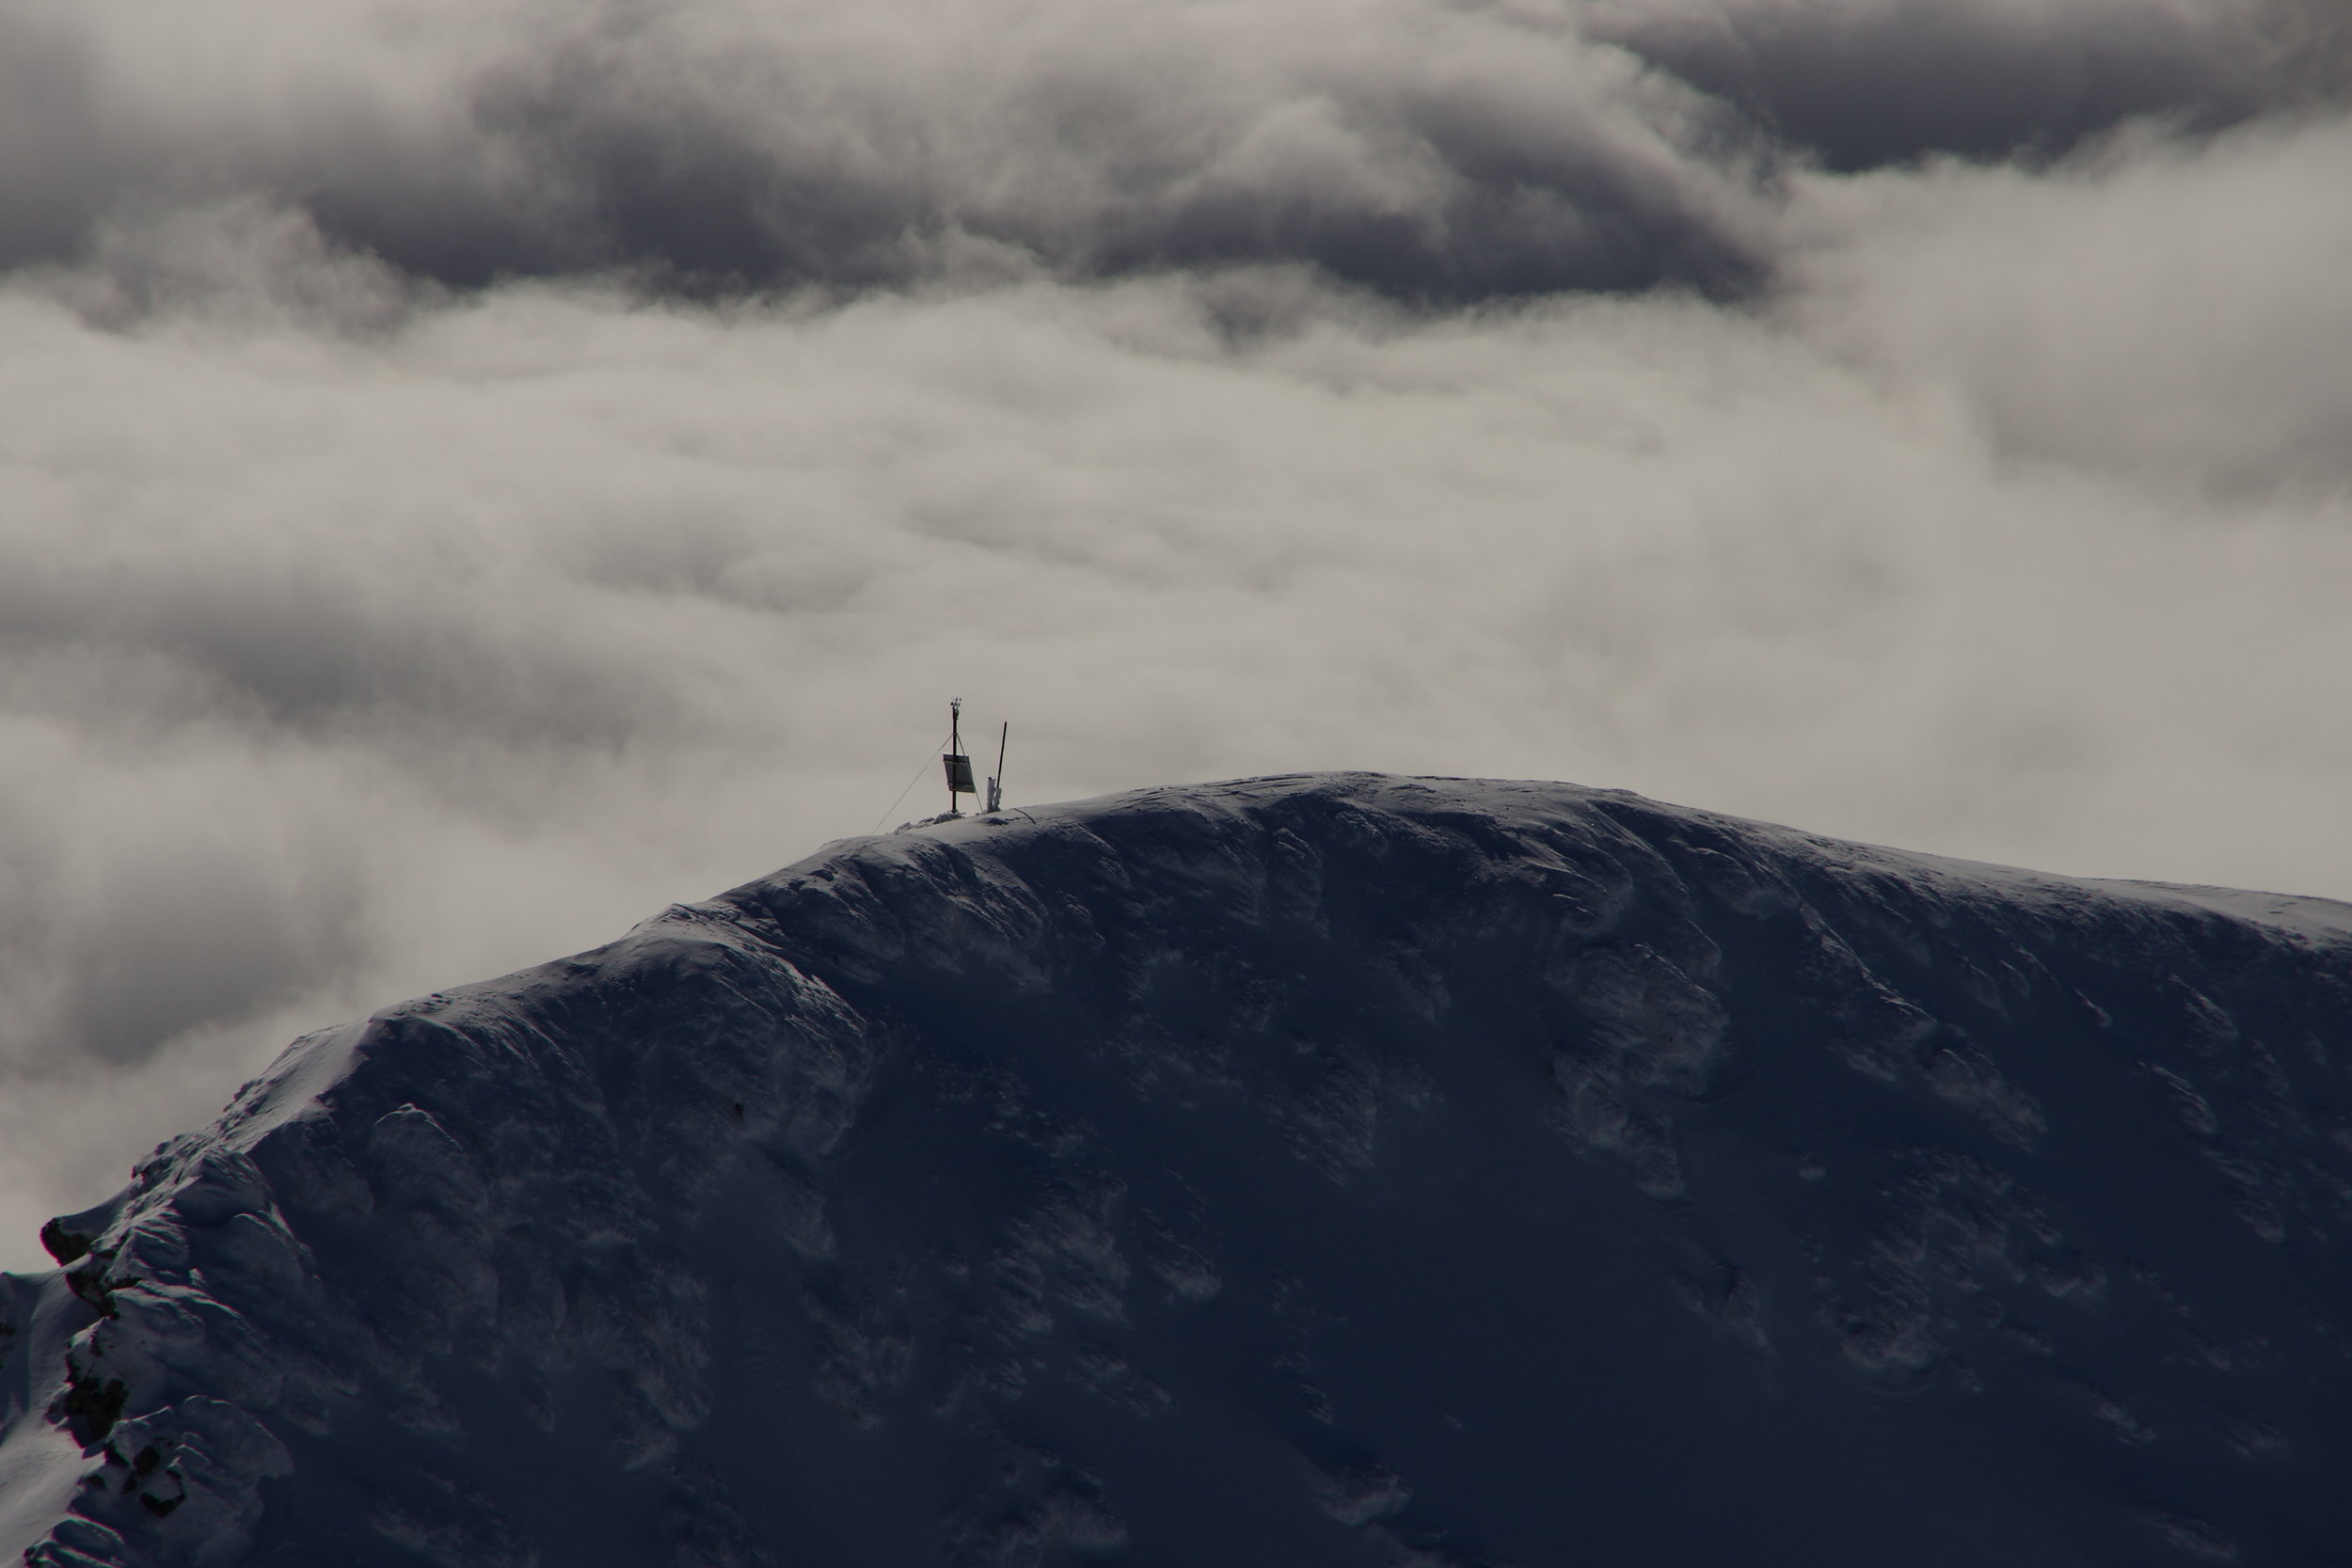 BARANI DESIGN Technologies AWOS weather station at 2000 meters in High Tatra mountains.